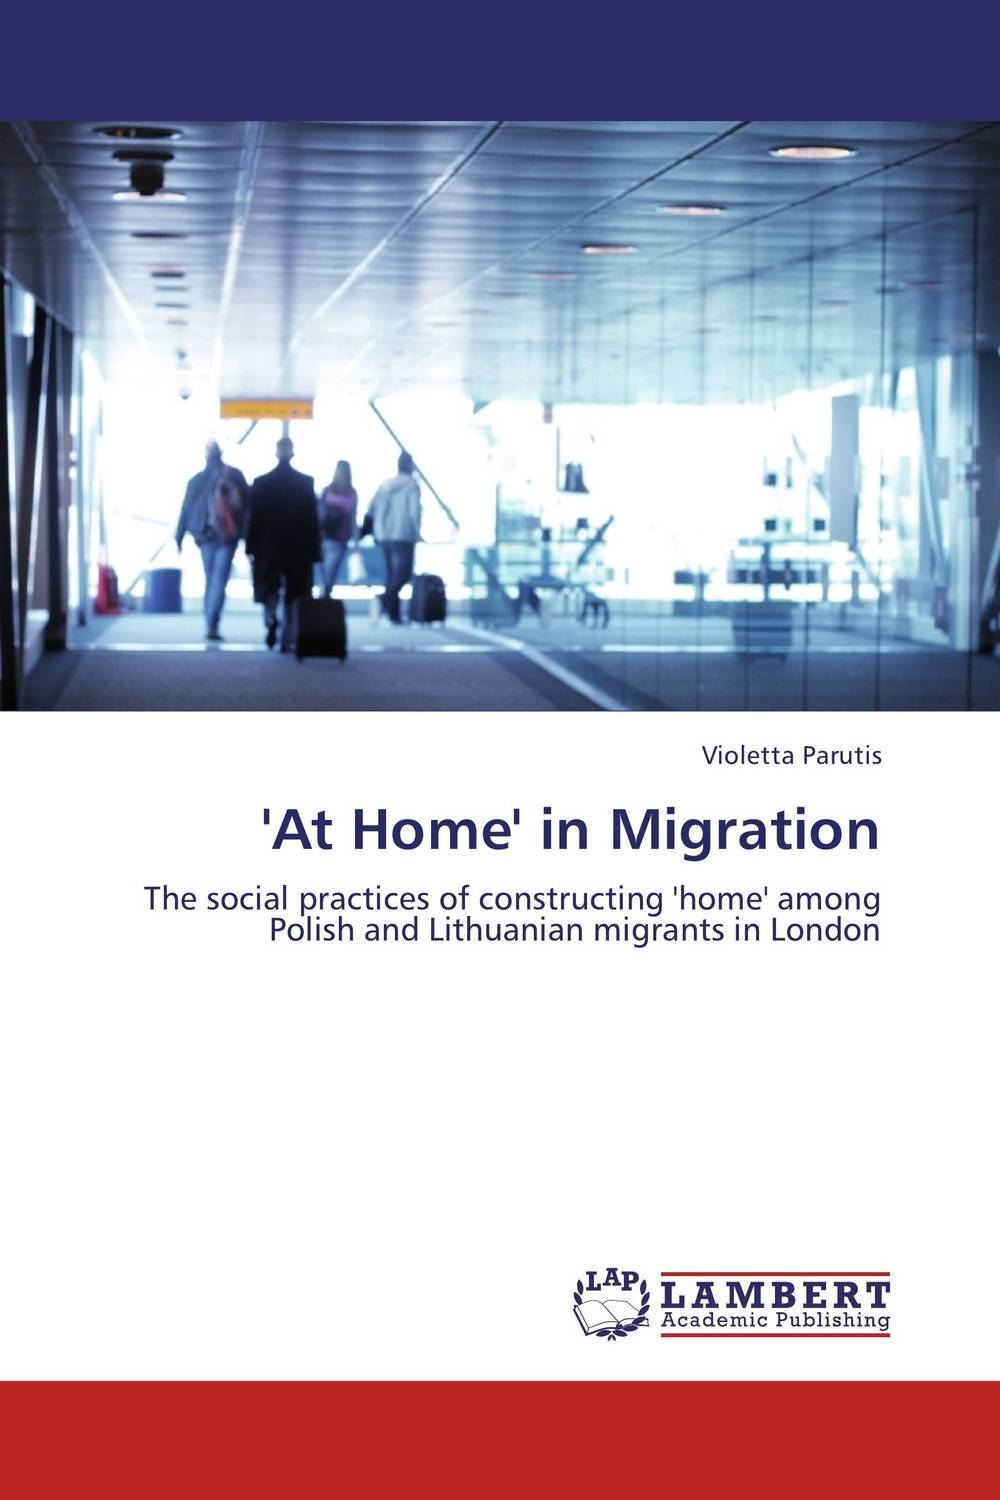 'At Home' in Migration point systems migration policy and international students flow